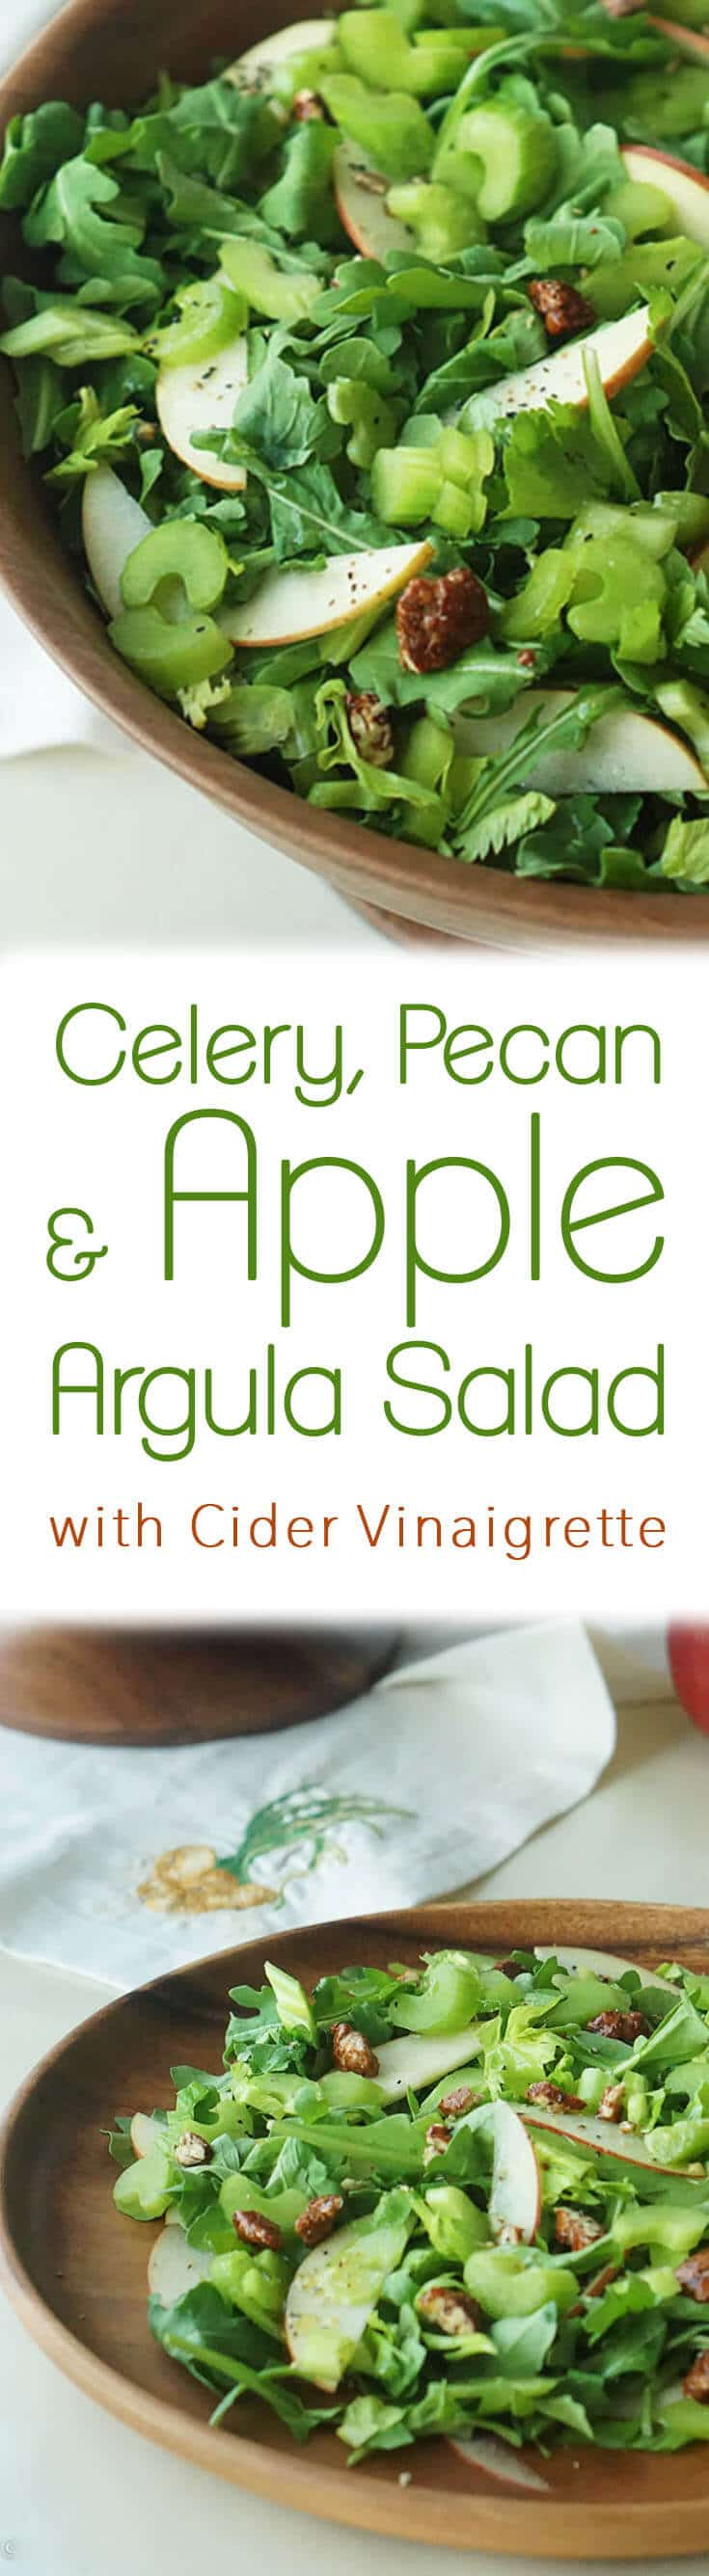 This Apple Arugula Salad is a perfect balance of flavours and textures with the mild crunchy celery, the sweet acidic apples, the peppery arugula and sweet pecans.